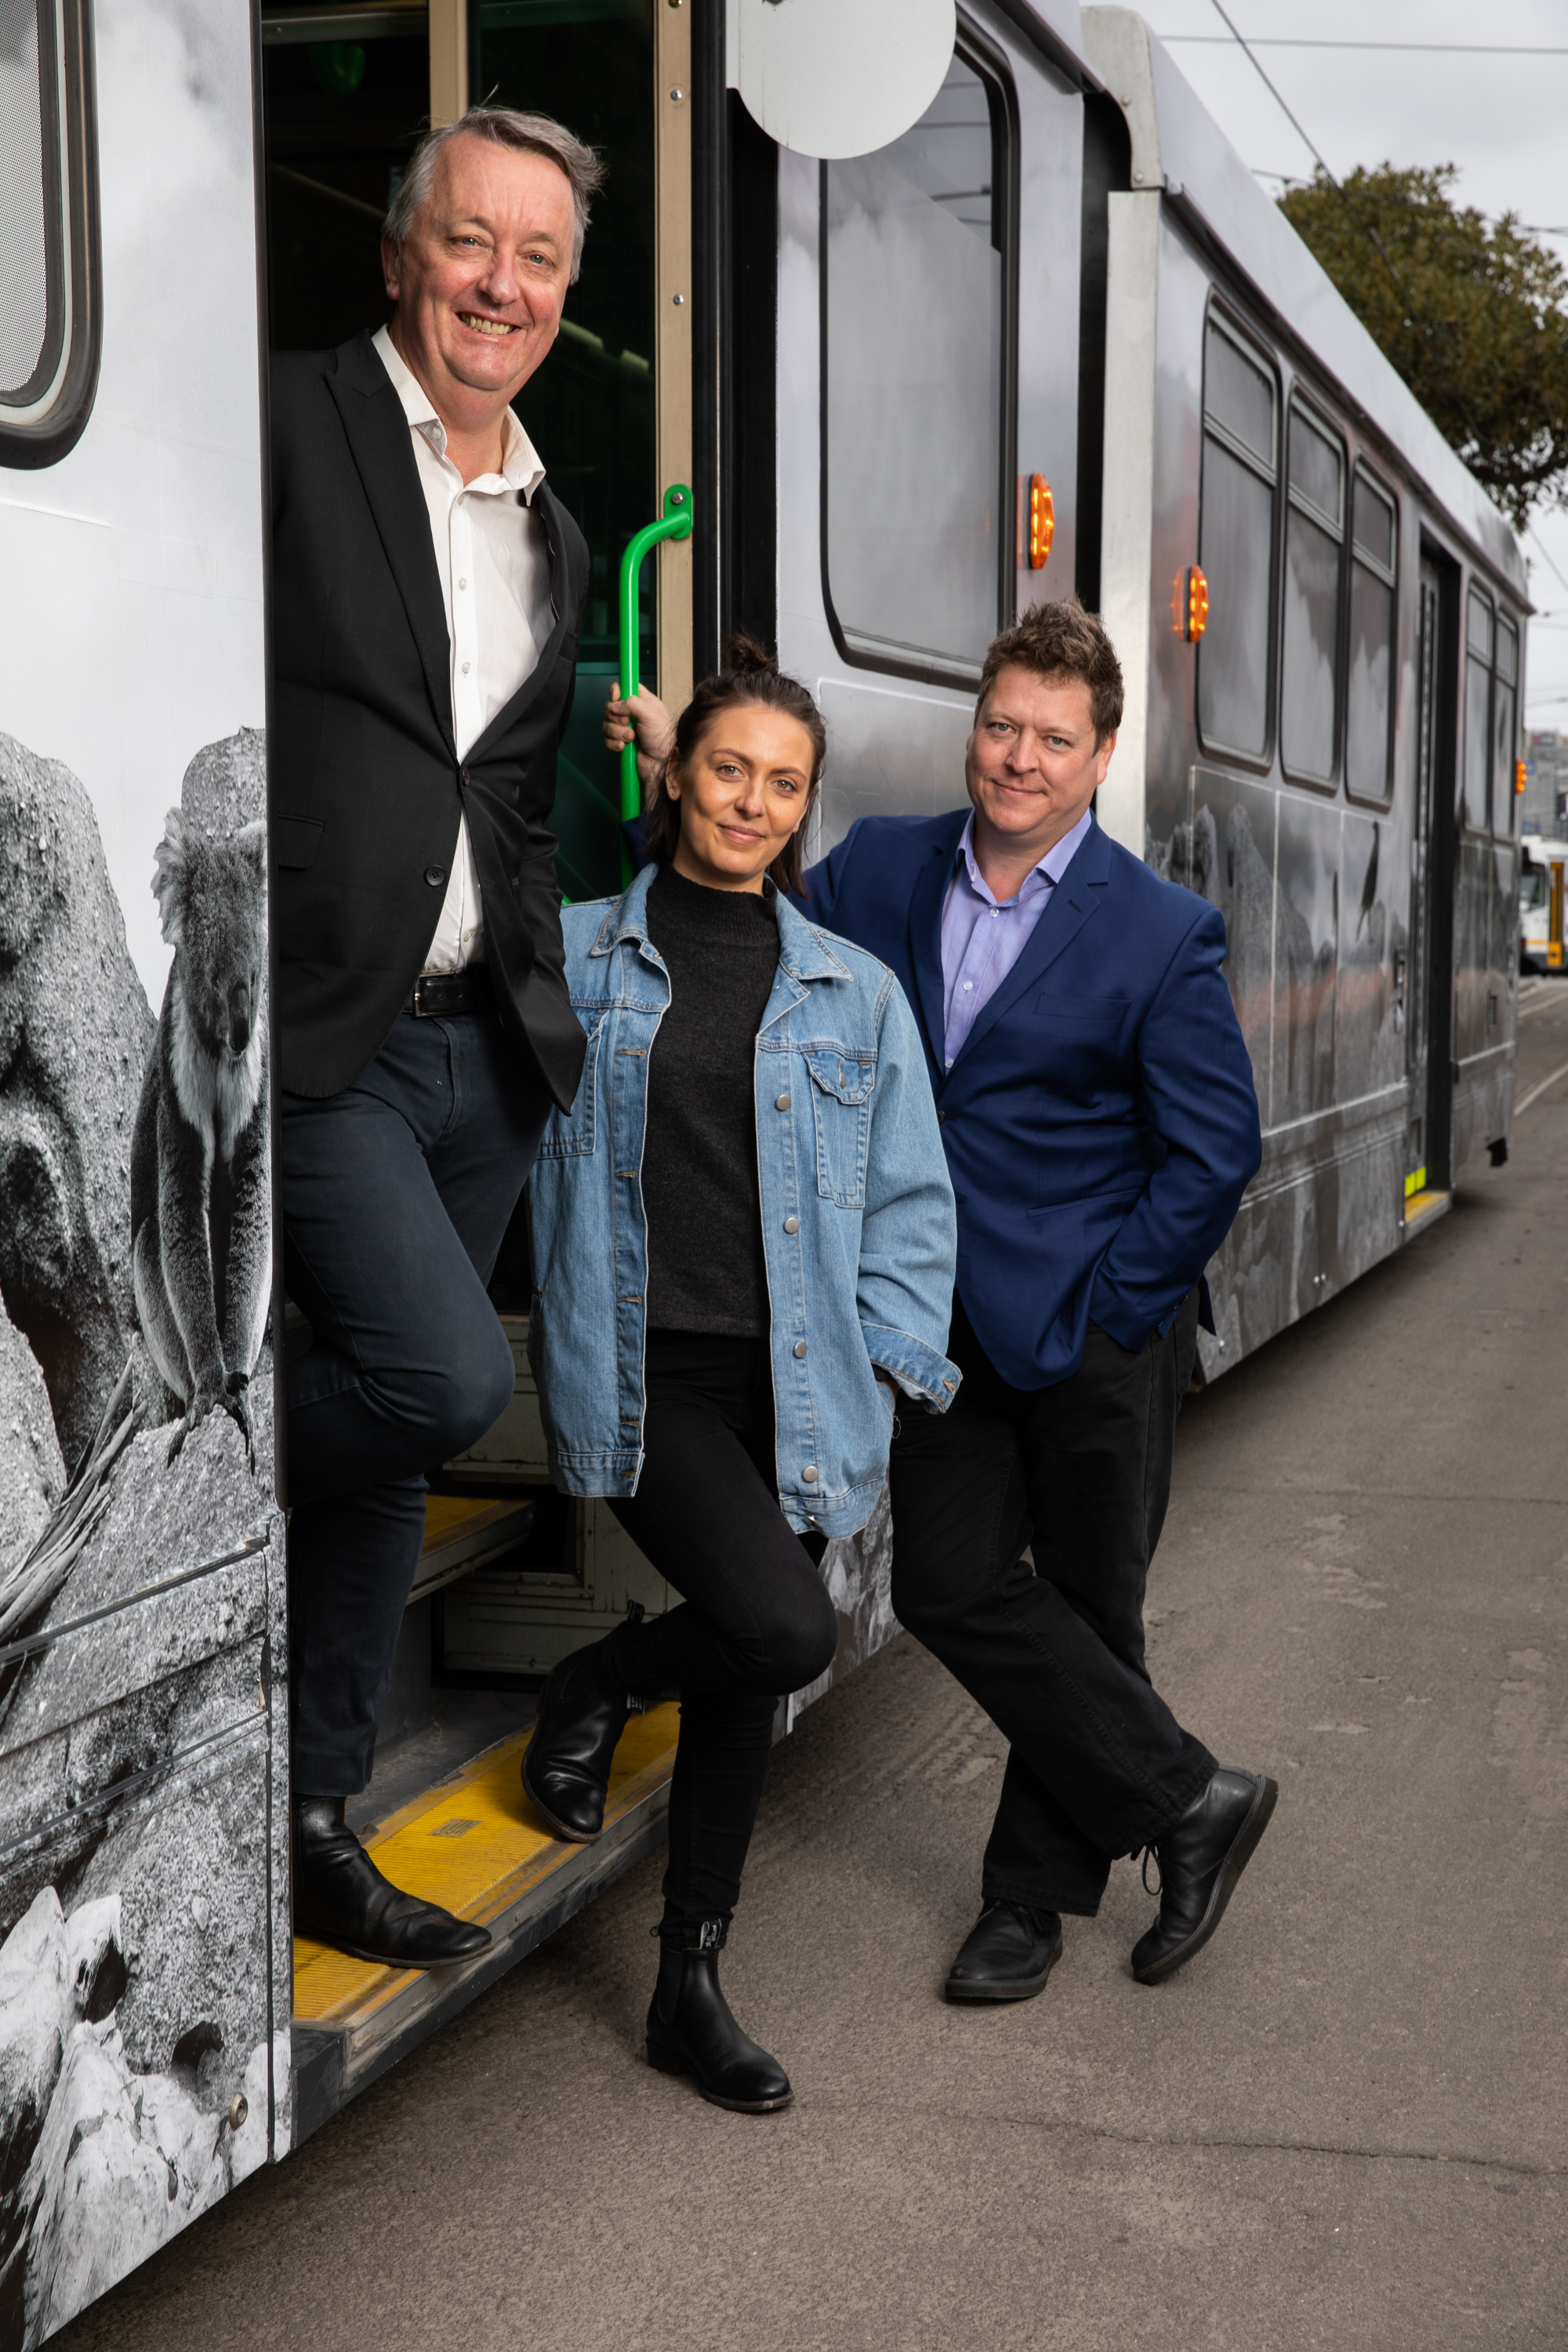 Hayley Millar-Baker pictured with Martin Foley MP and Jonathan Holloway at the Melb Art Tram launch, Credit: Supplied.